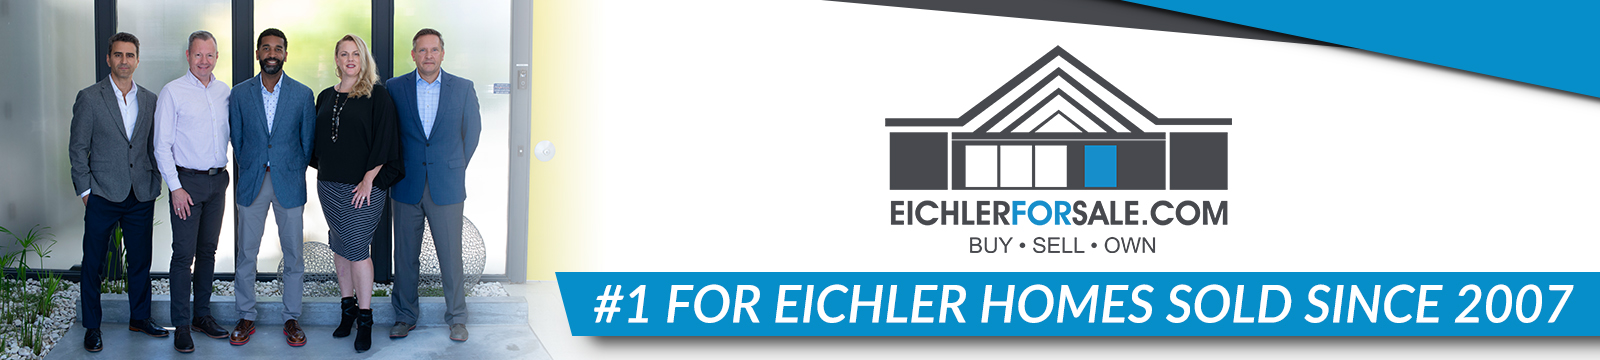 eichlerforsale team